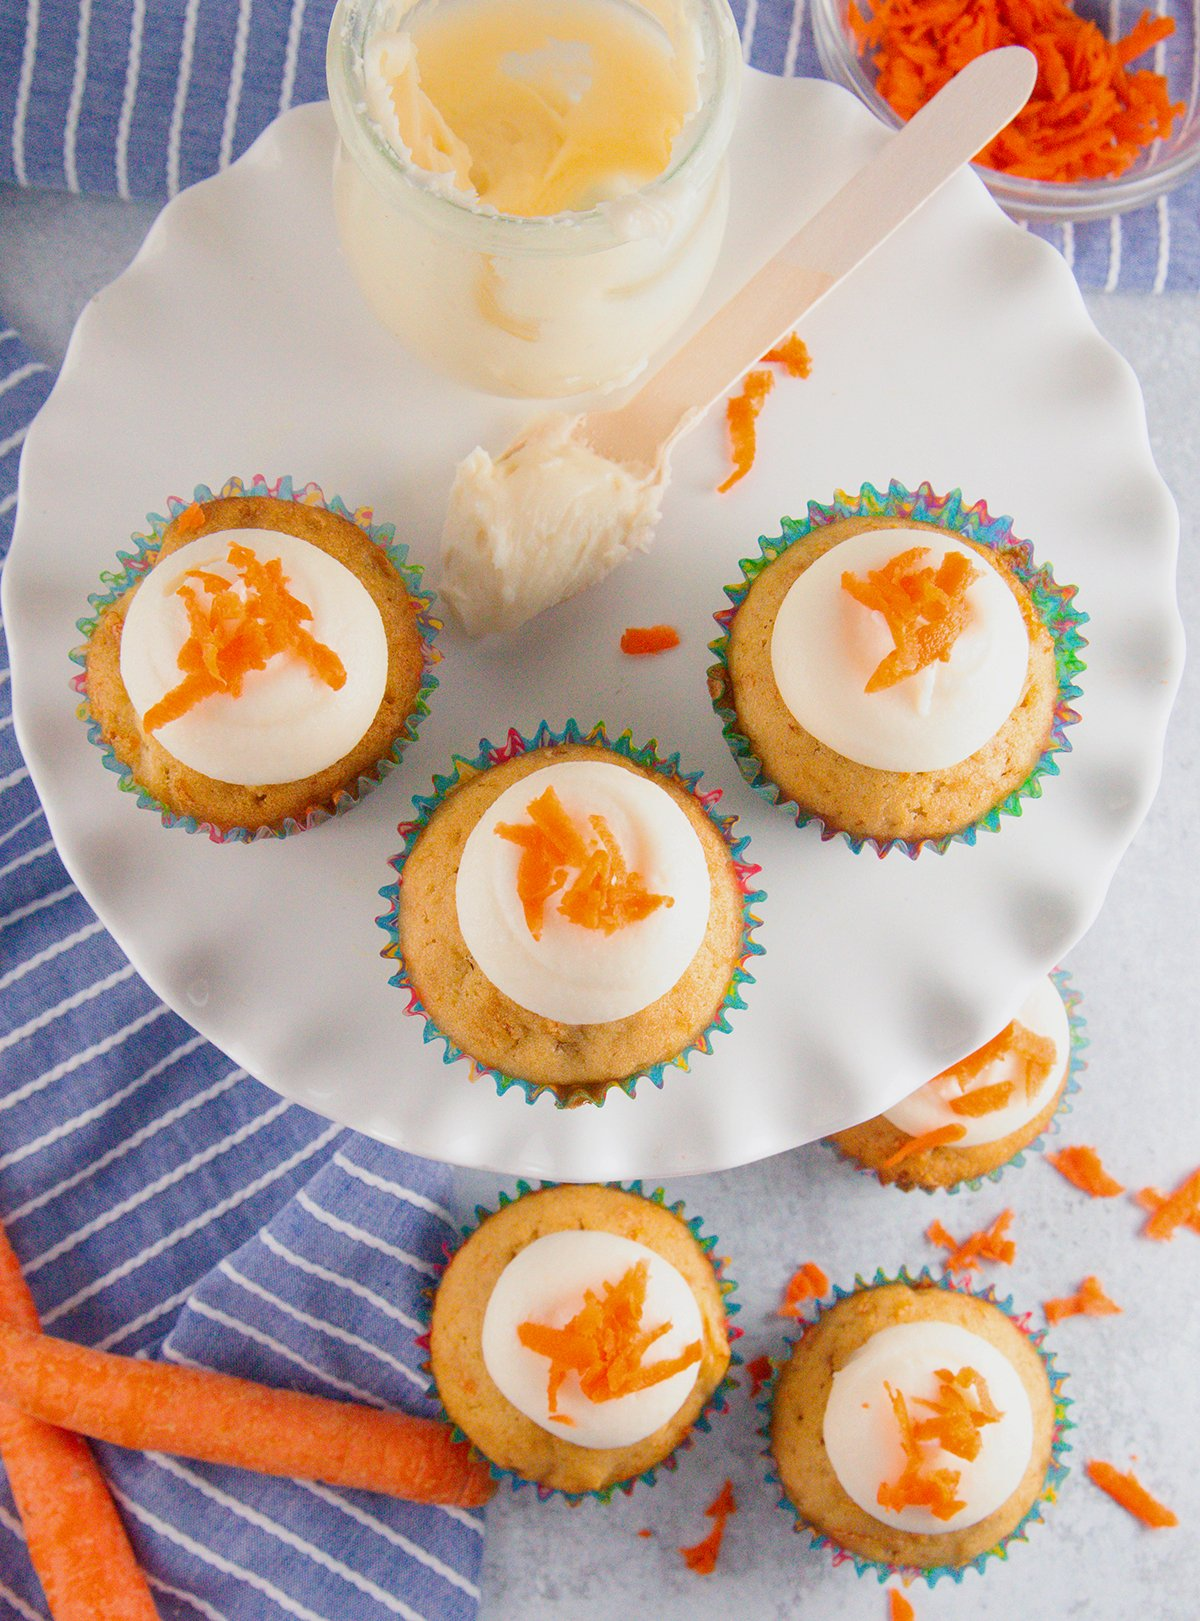 A yummy plate full of cream cheese frosting topped carrot cupcakes